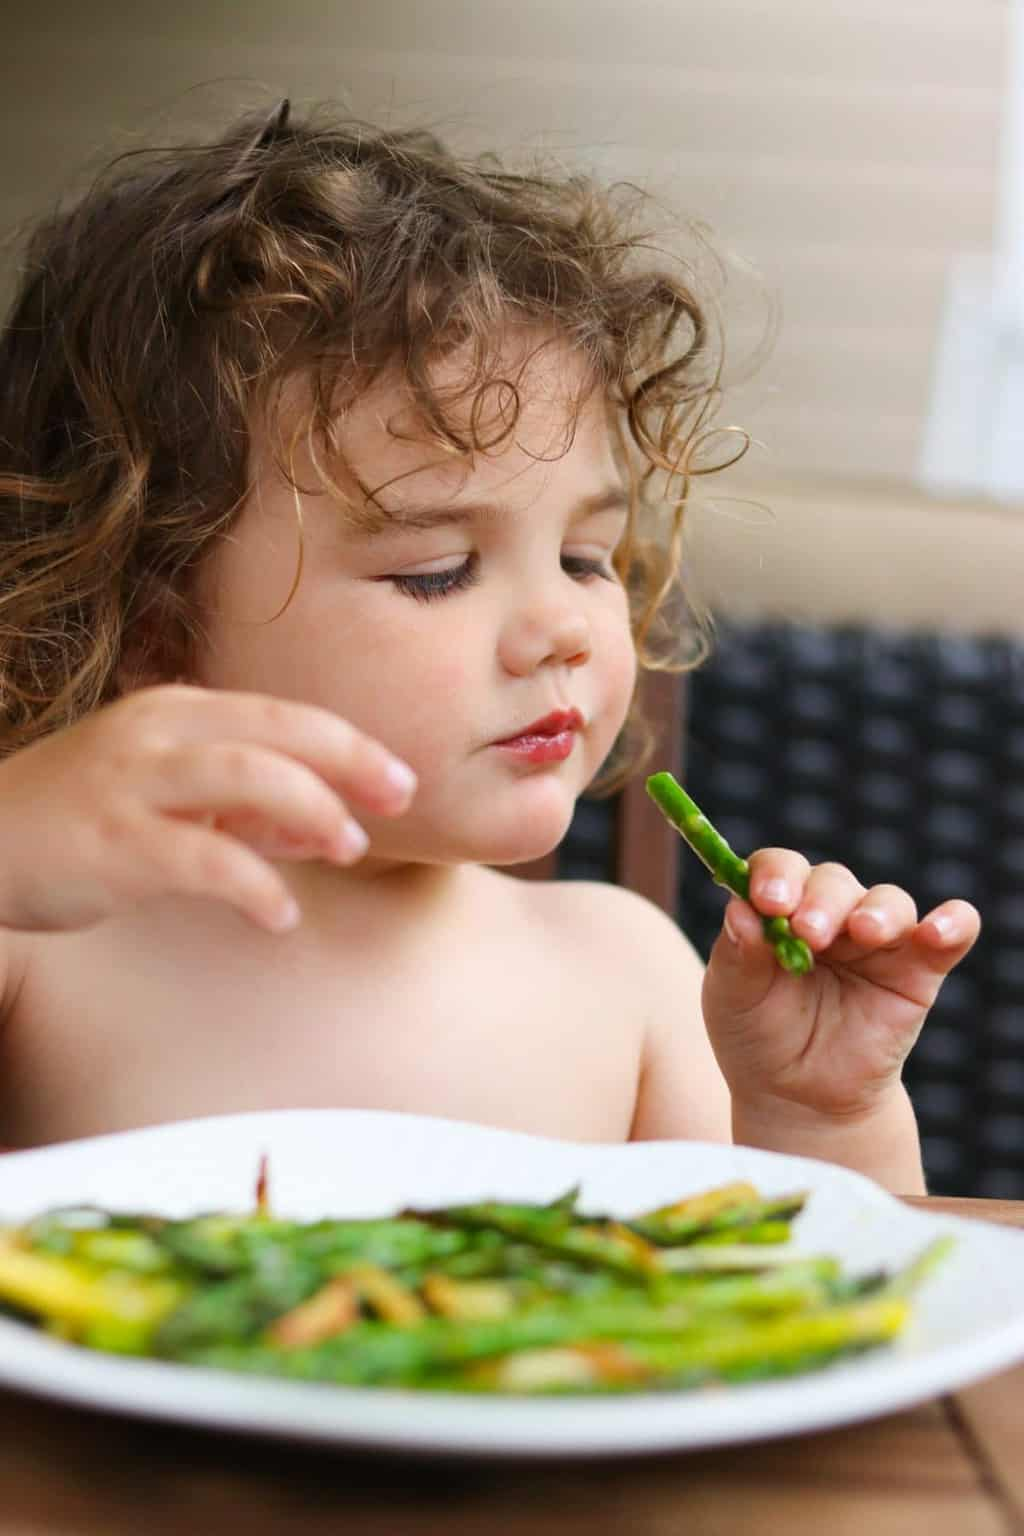 Introduce Asparagus After Ten Months   A Parent's Guide to The 15 Baby Foods That Cause Gas in Babies   Baby Journey